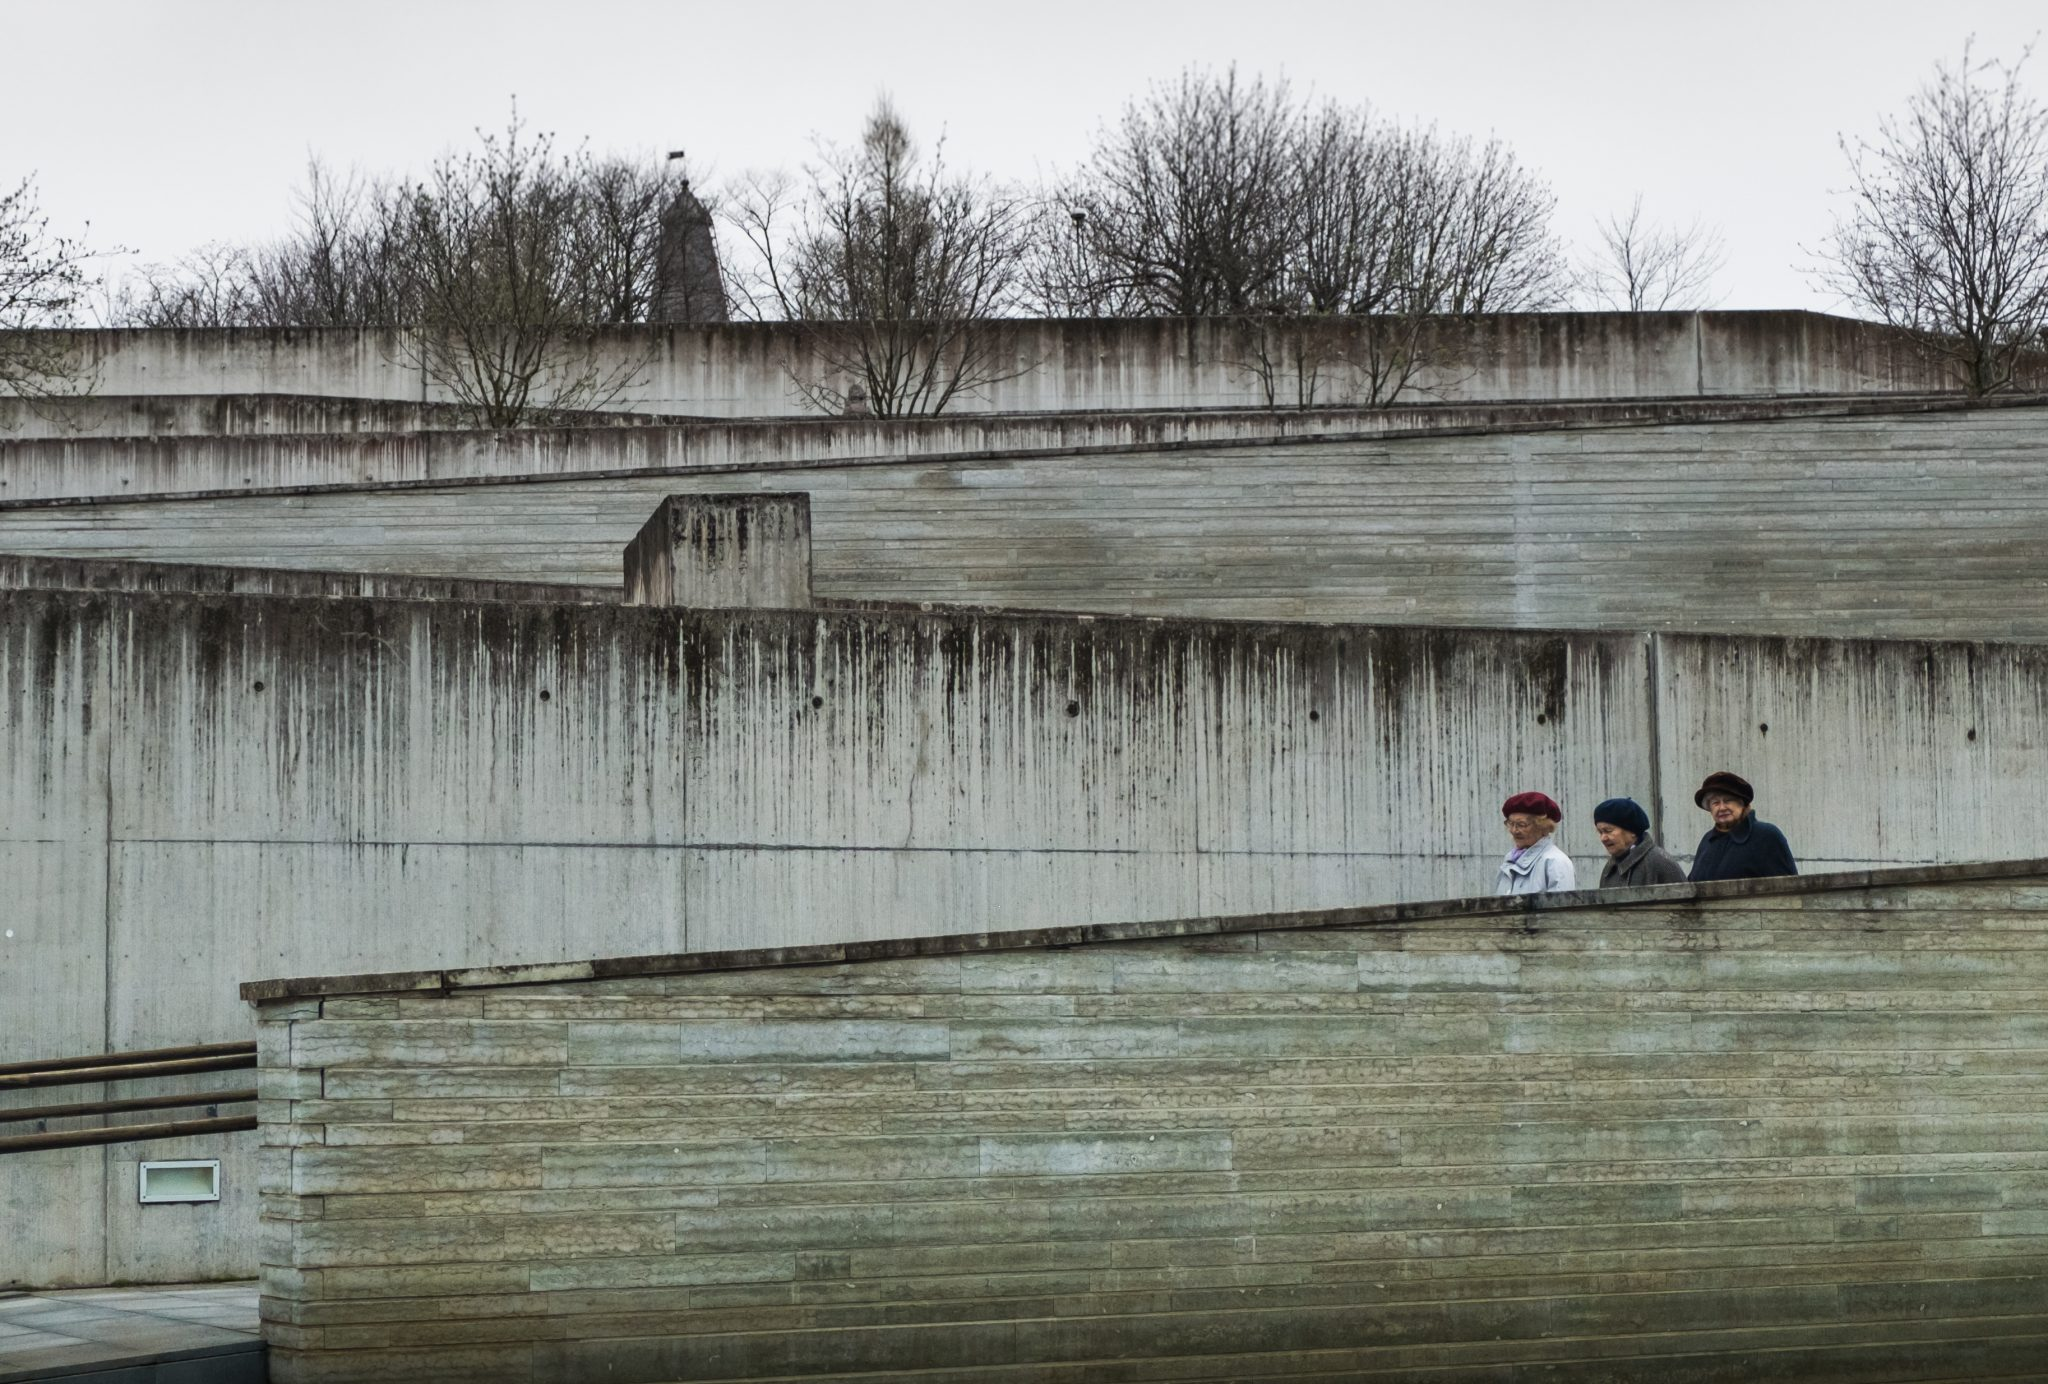 Three elderly ladies walking down a concrete structure ramp in front of the KUMU museum in Tallinn photo by Jo Kassis